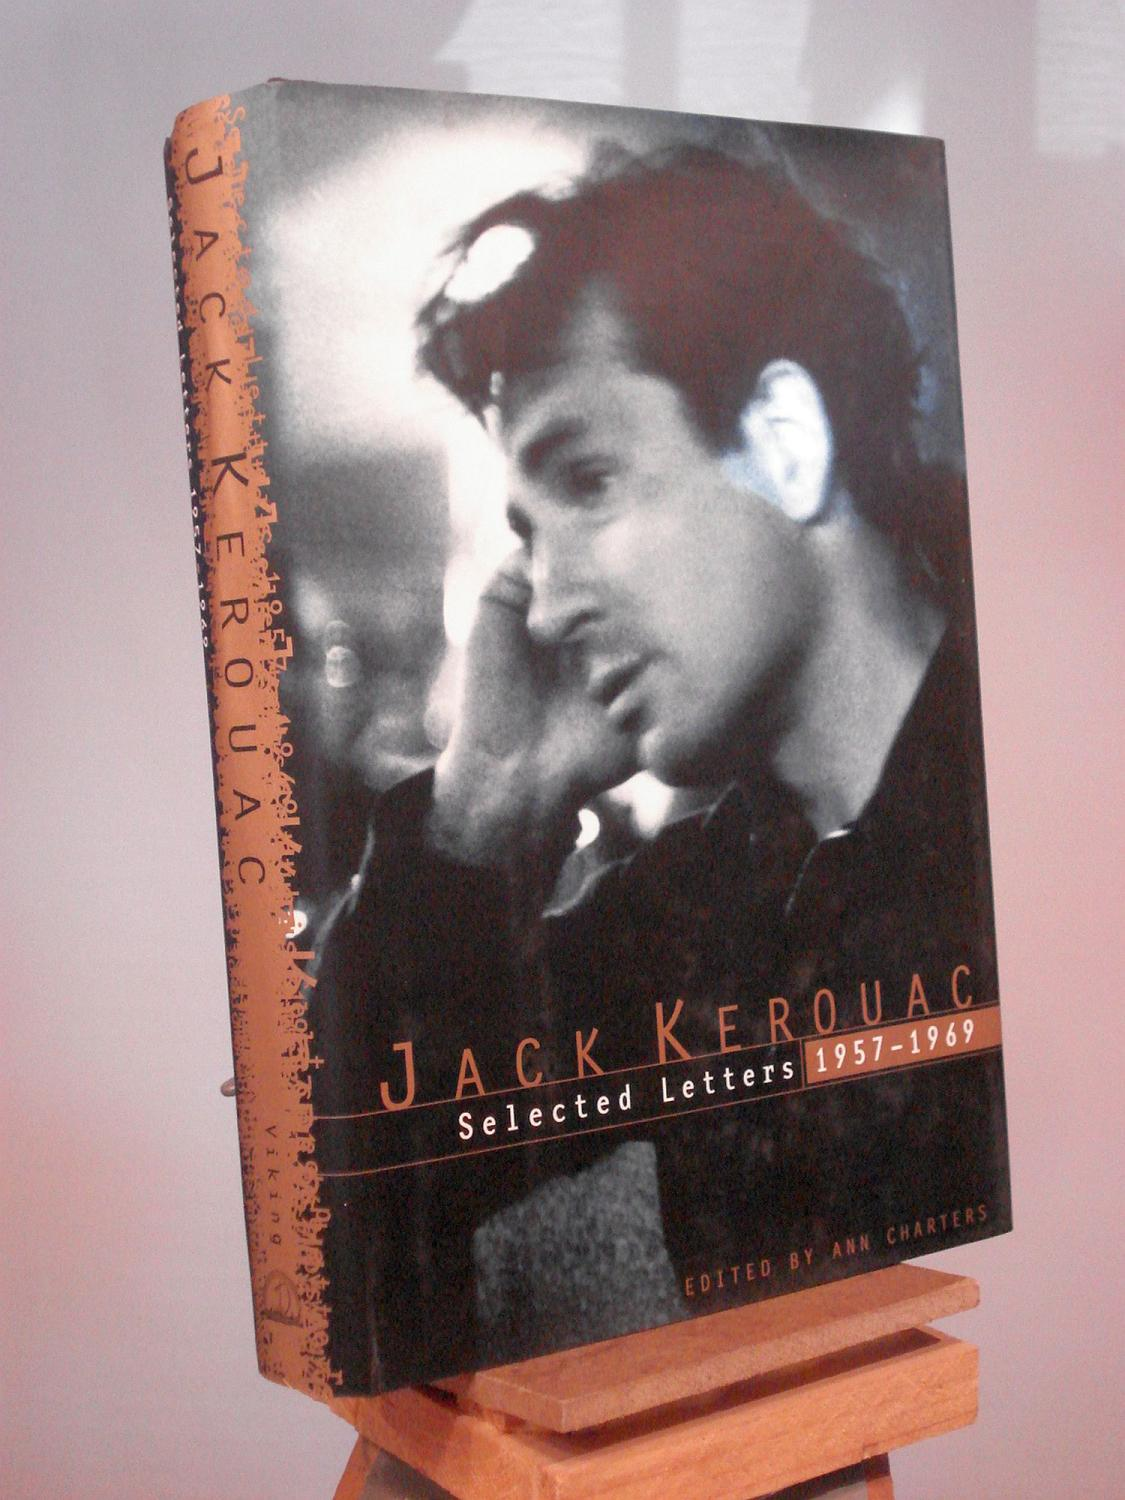 Volume 2 1957-1969 Kerouac Selected Letters